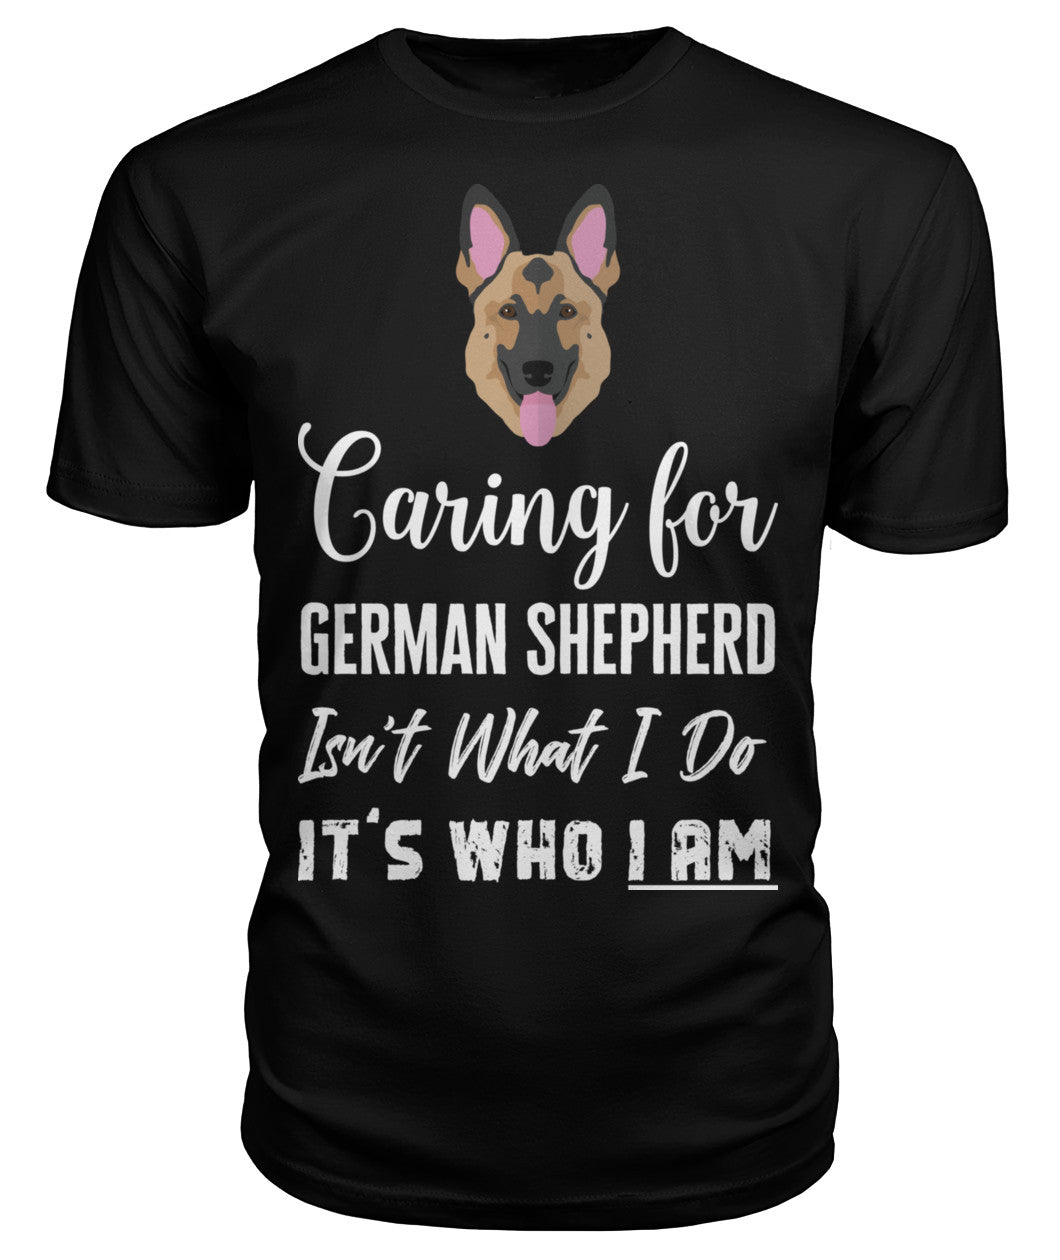 """Care for German Shepherd Isn't What I Do, It's Who I Am"" T-Shirt"